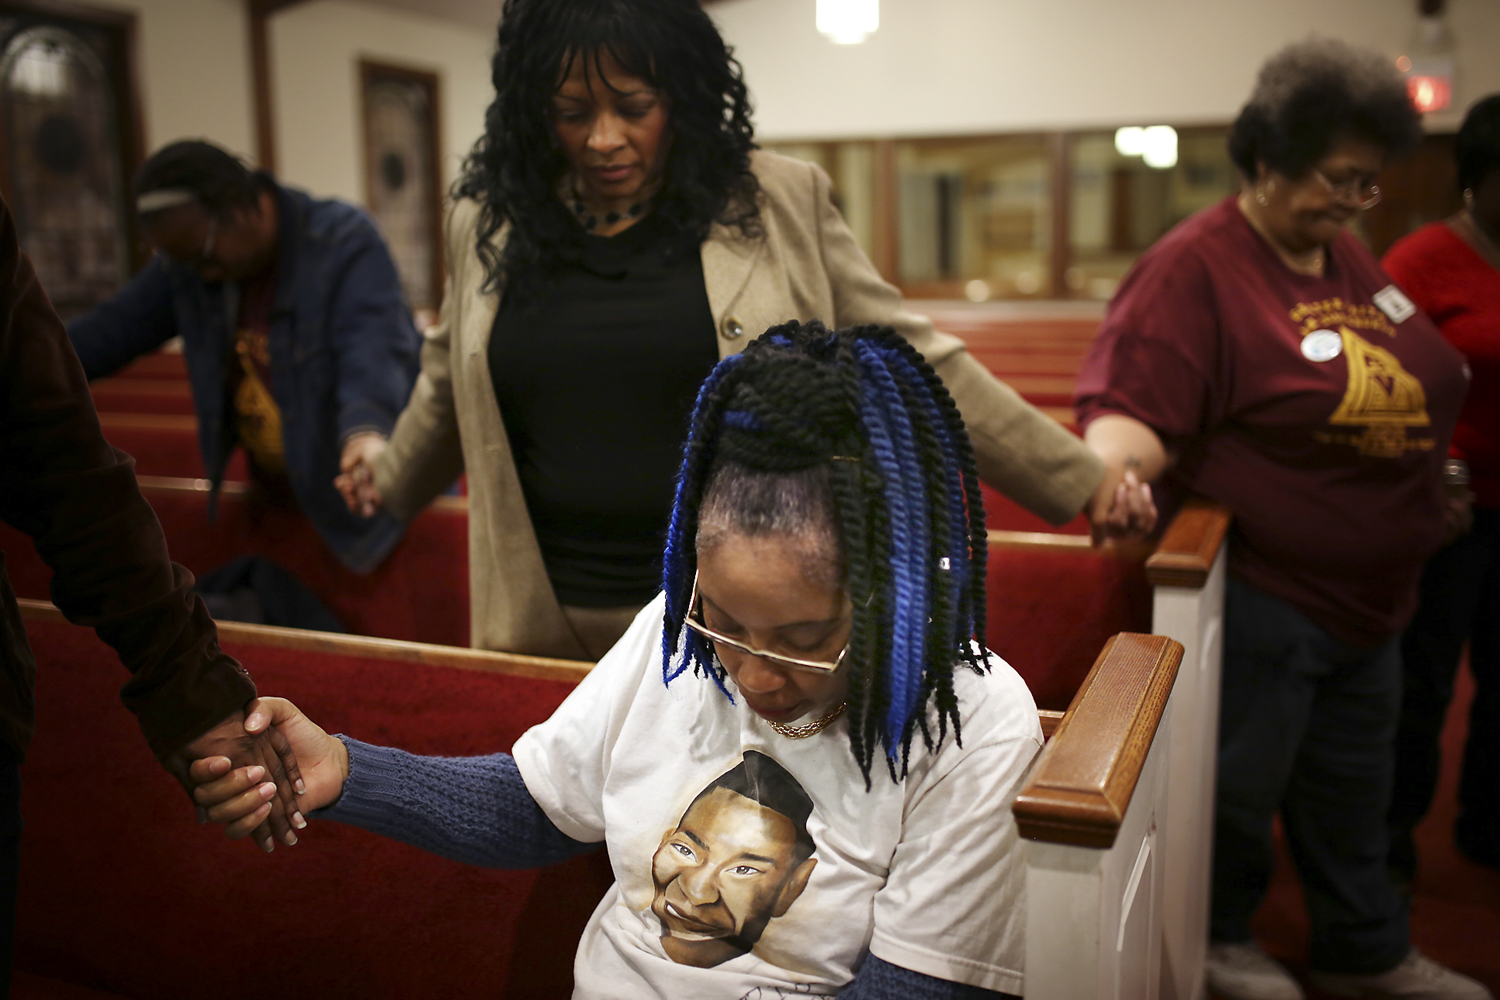 Petersburg resident Nauvata Evans, whose son was killed in the city in 2005, advocated for better neighborhood watch programs and for people to be unafraid to share information with local police. [Scott P. Yates/progress-index.com]